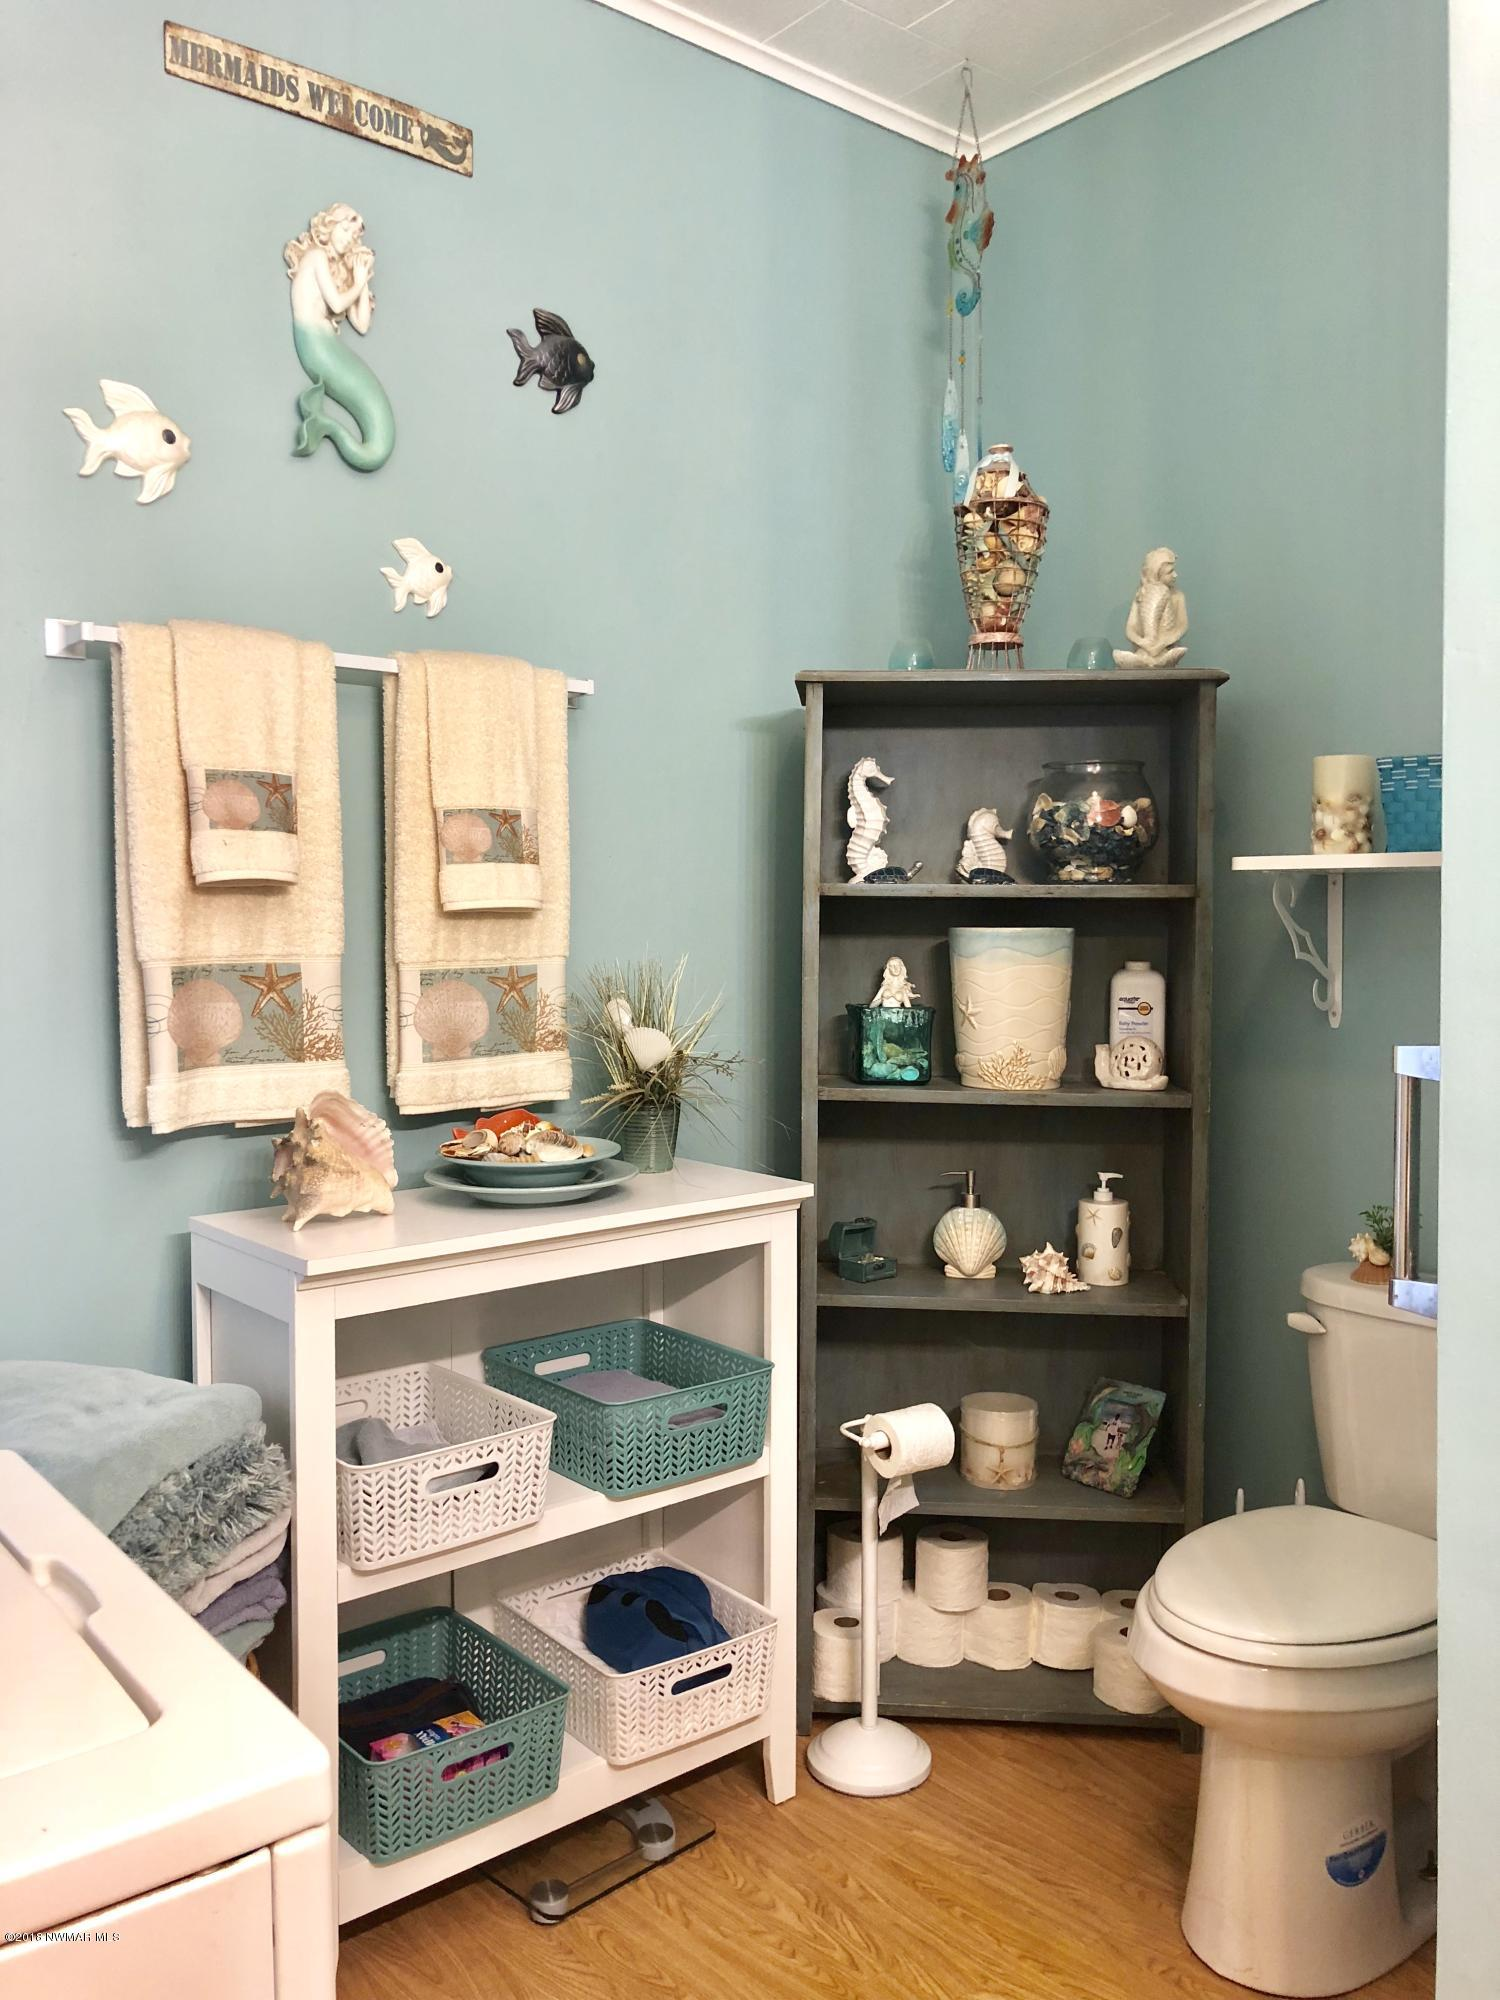 Bathroom with stackable washer/dryer